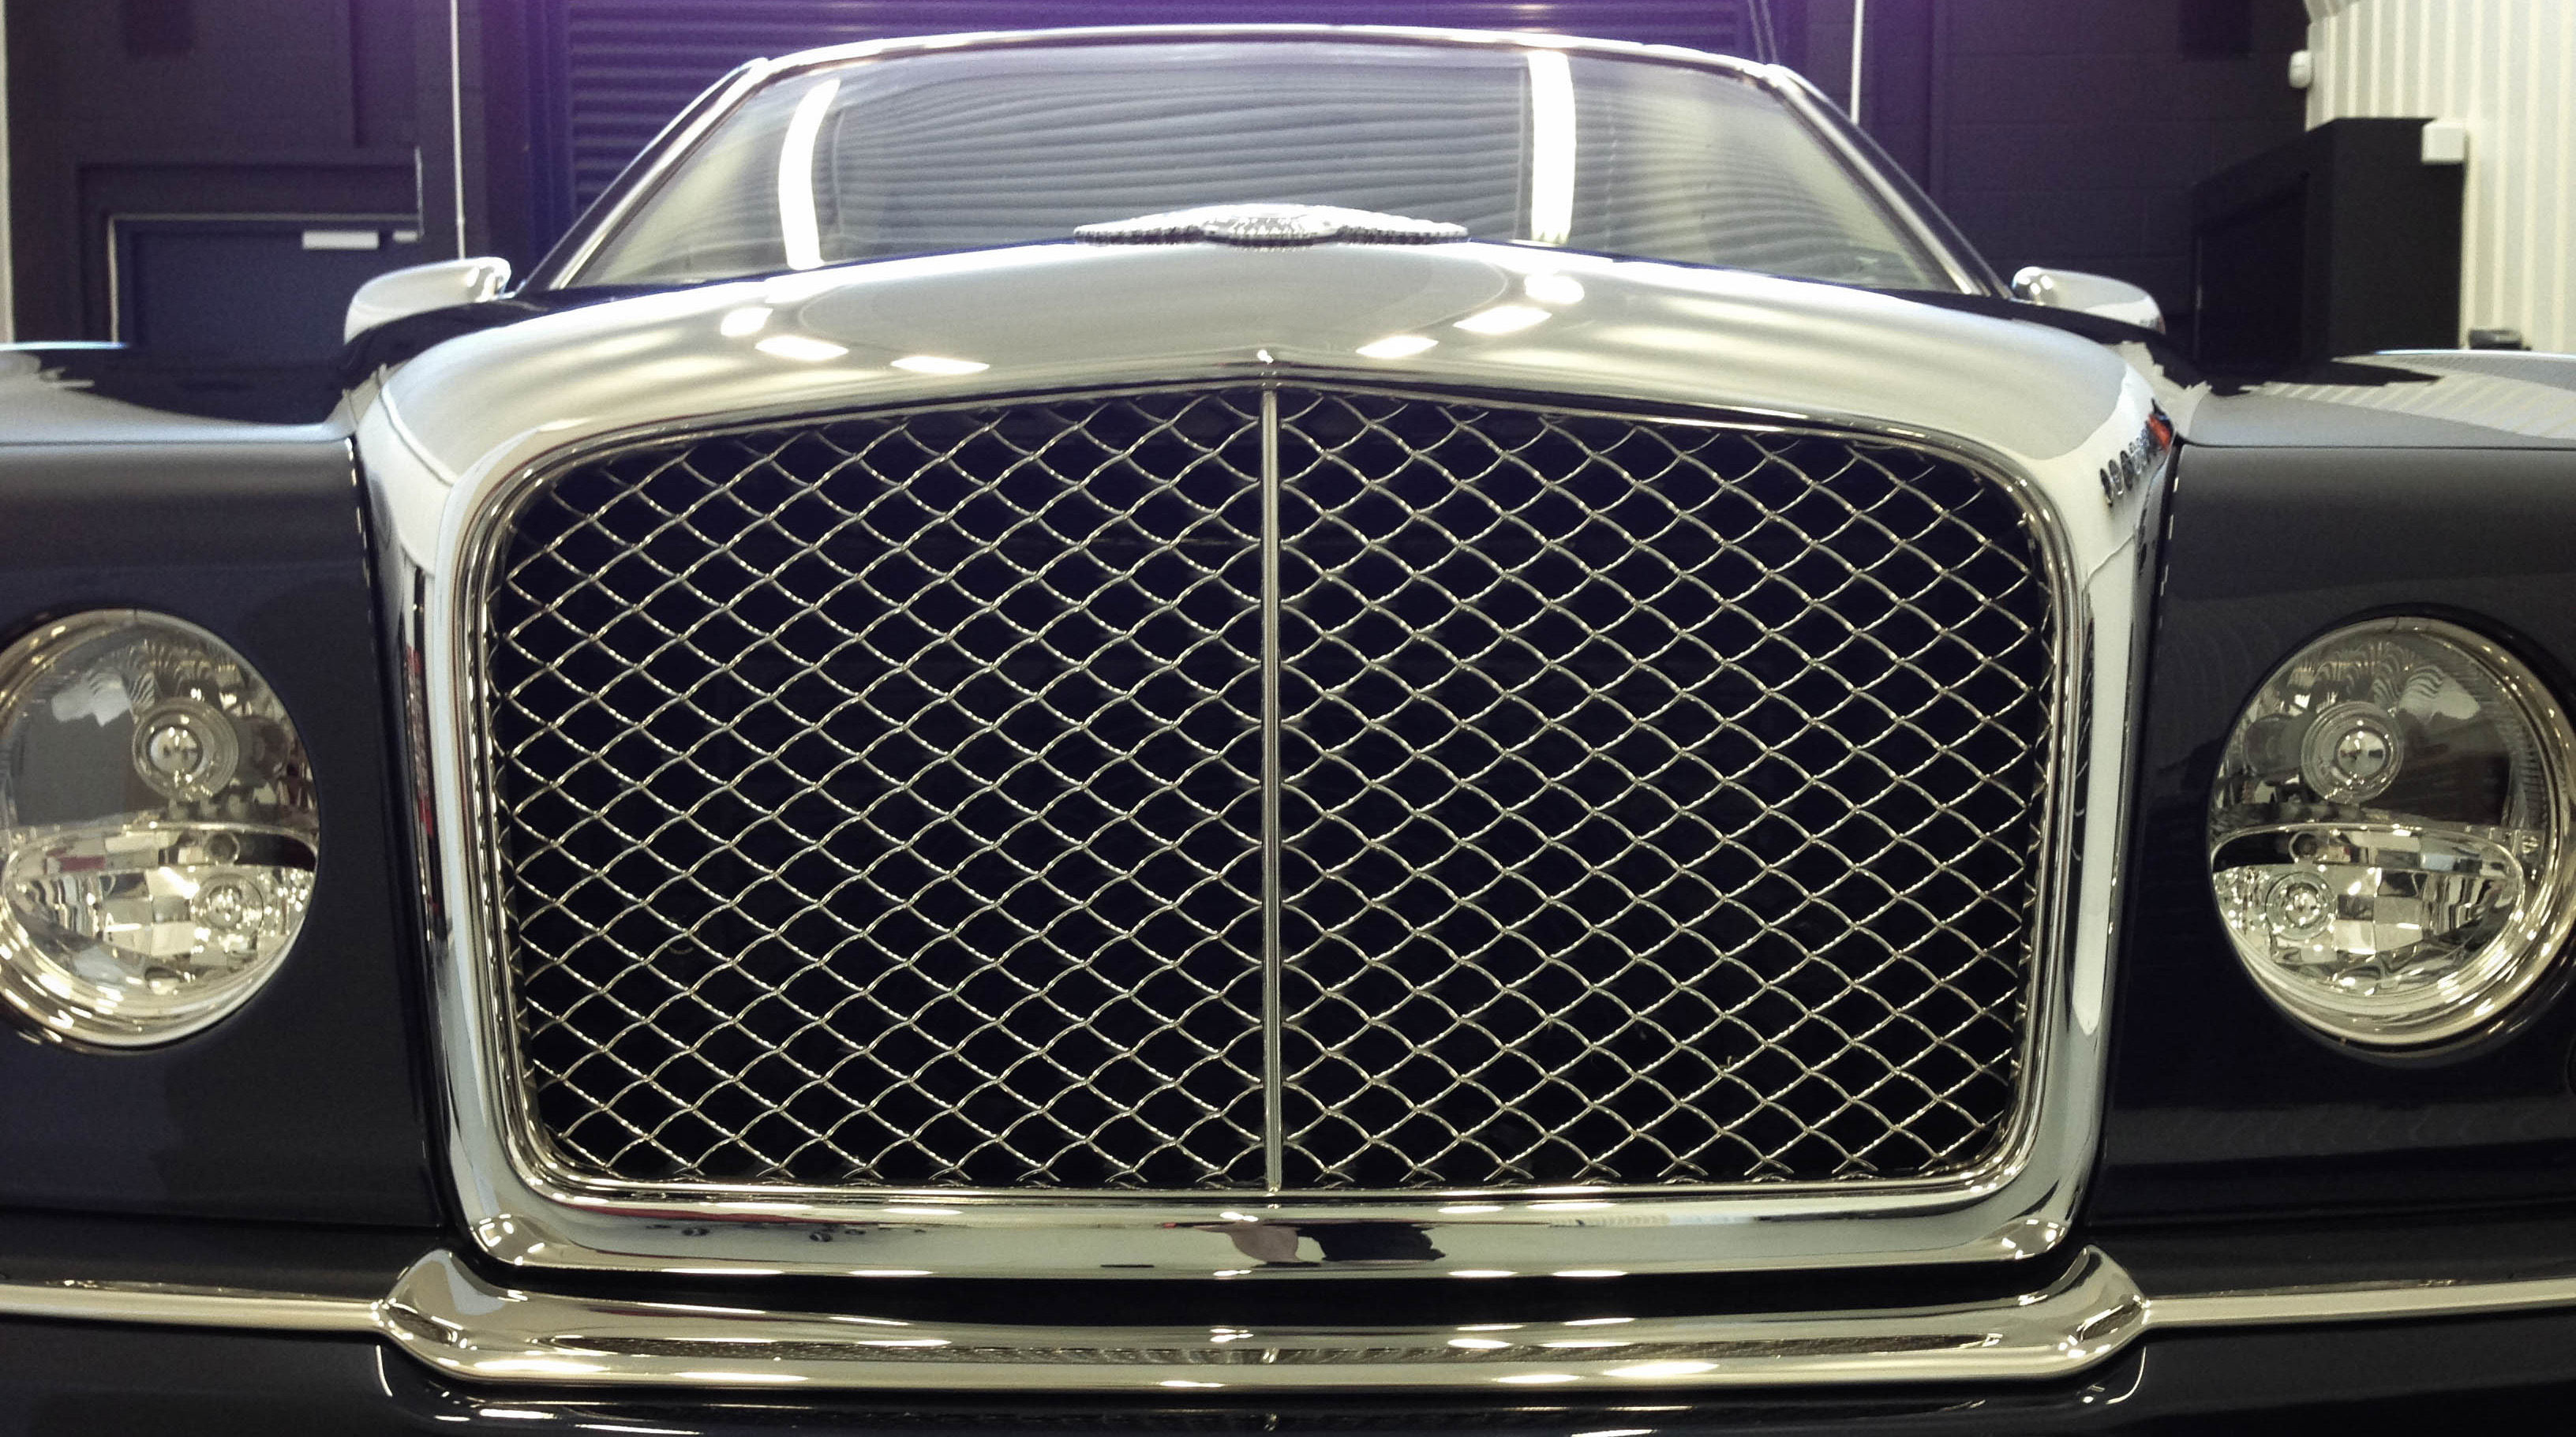 Bentley Arnage – Grill